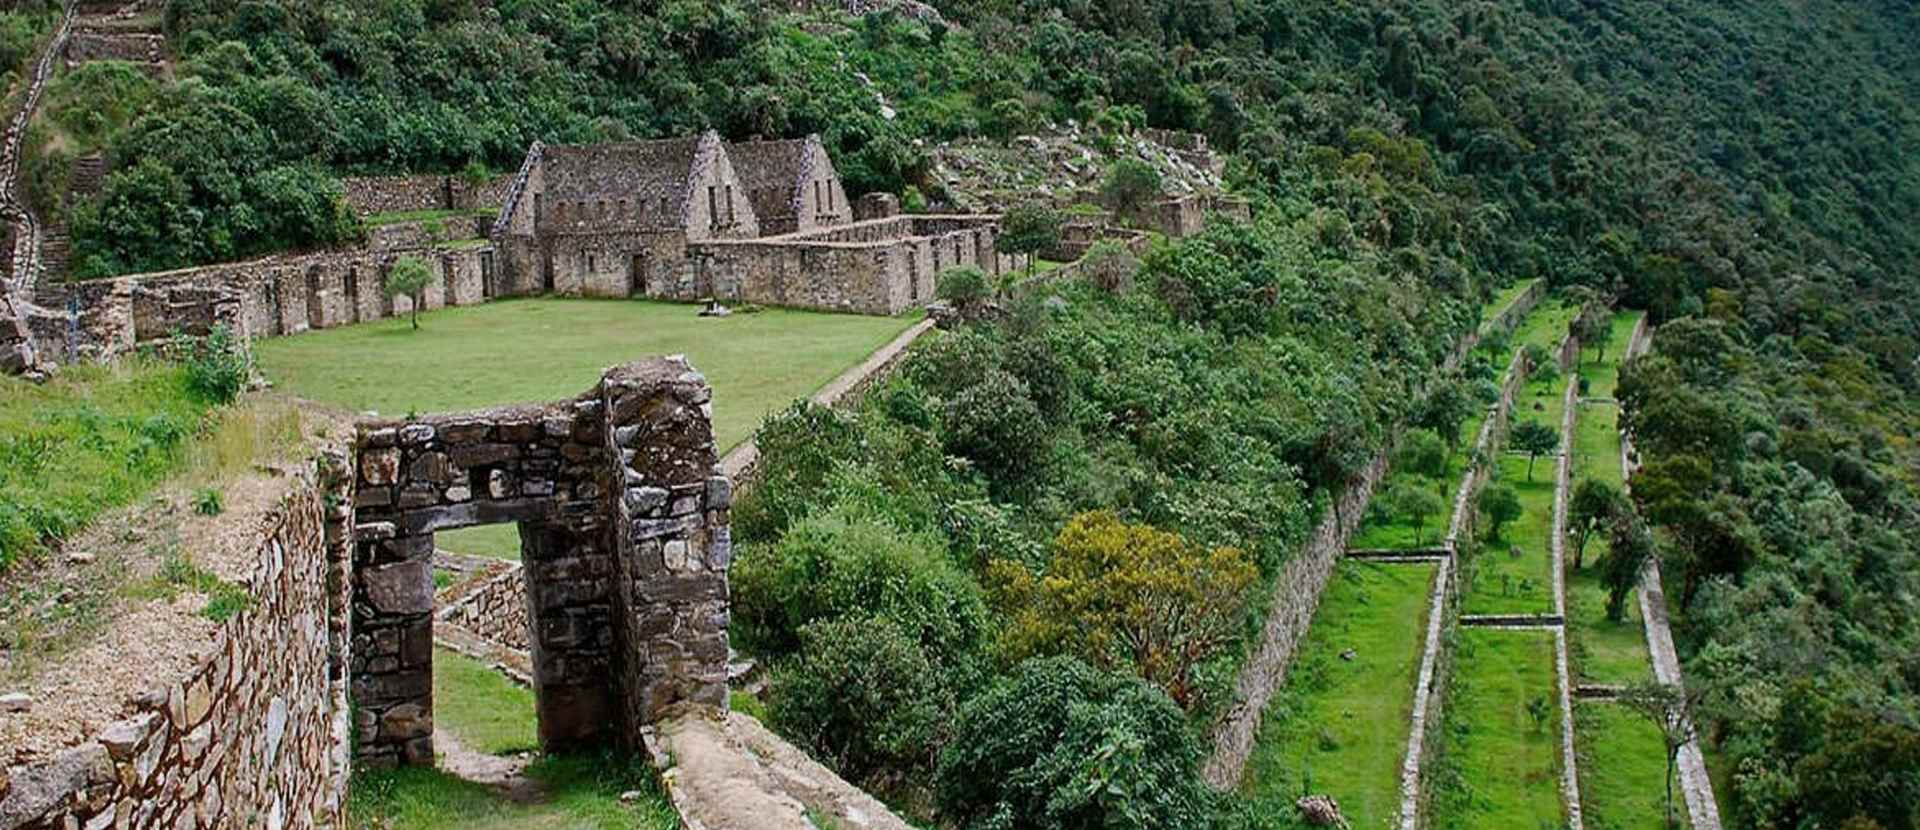 Reserva de Choquequirao Trek (Valle Sagrado) 4 dias -      INKA JUNGLE TREKS